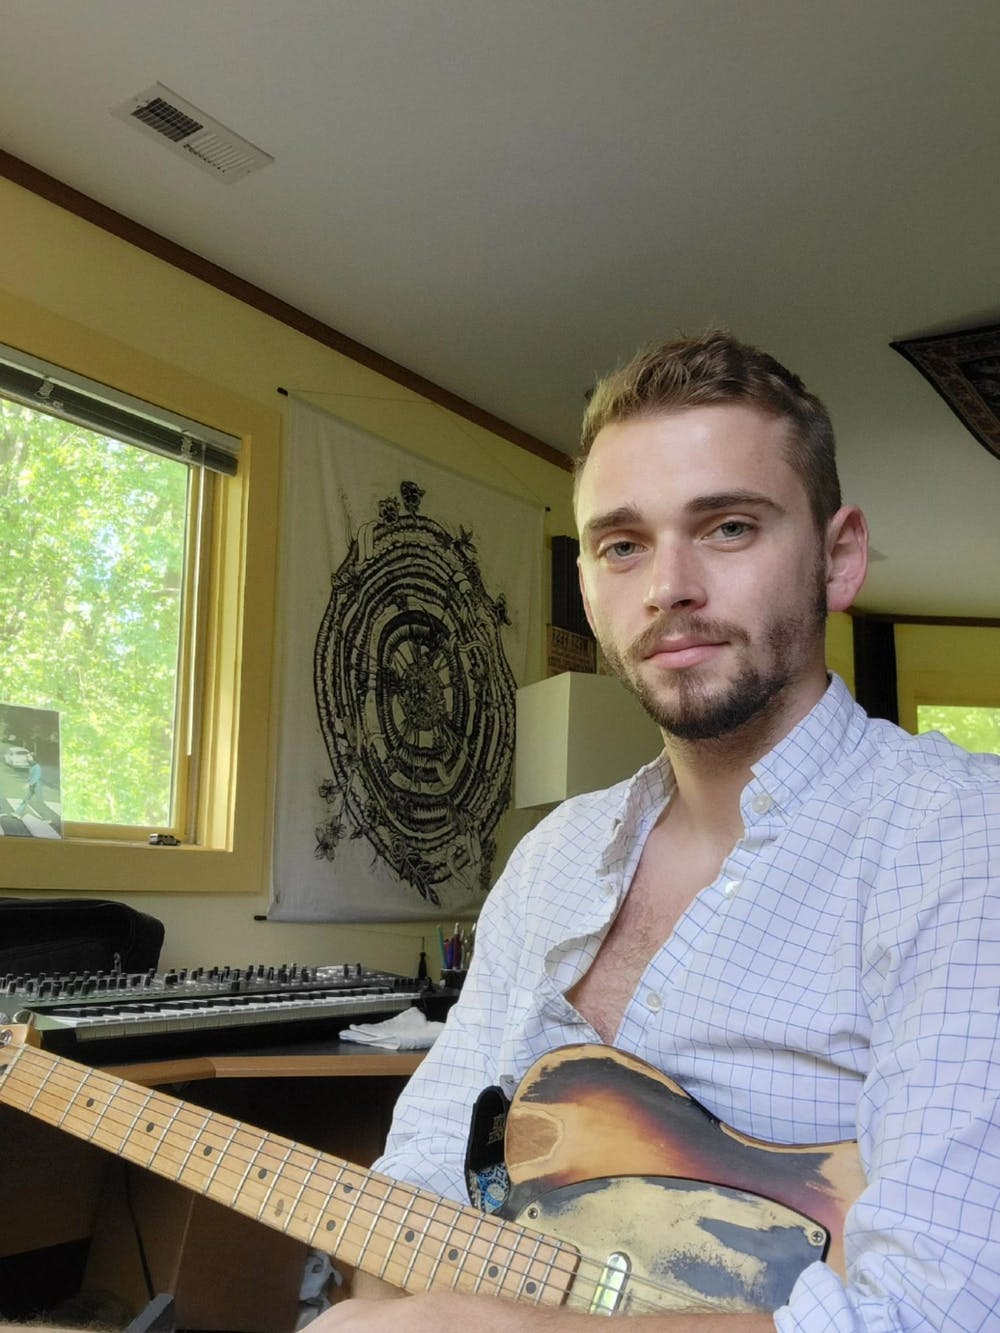 Del Ward, 26, is a singer/songwriter from Hillsborough, N.C. Photo courtesy of Del Ward.